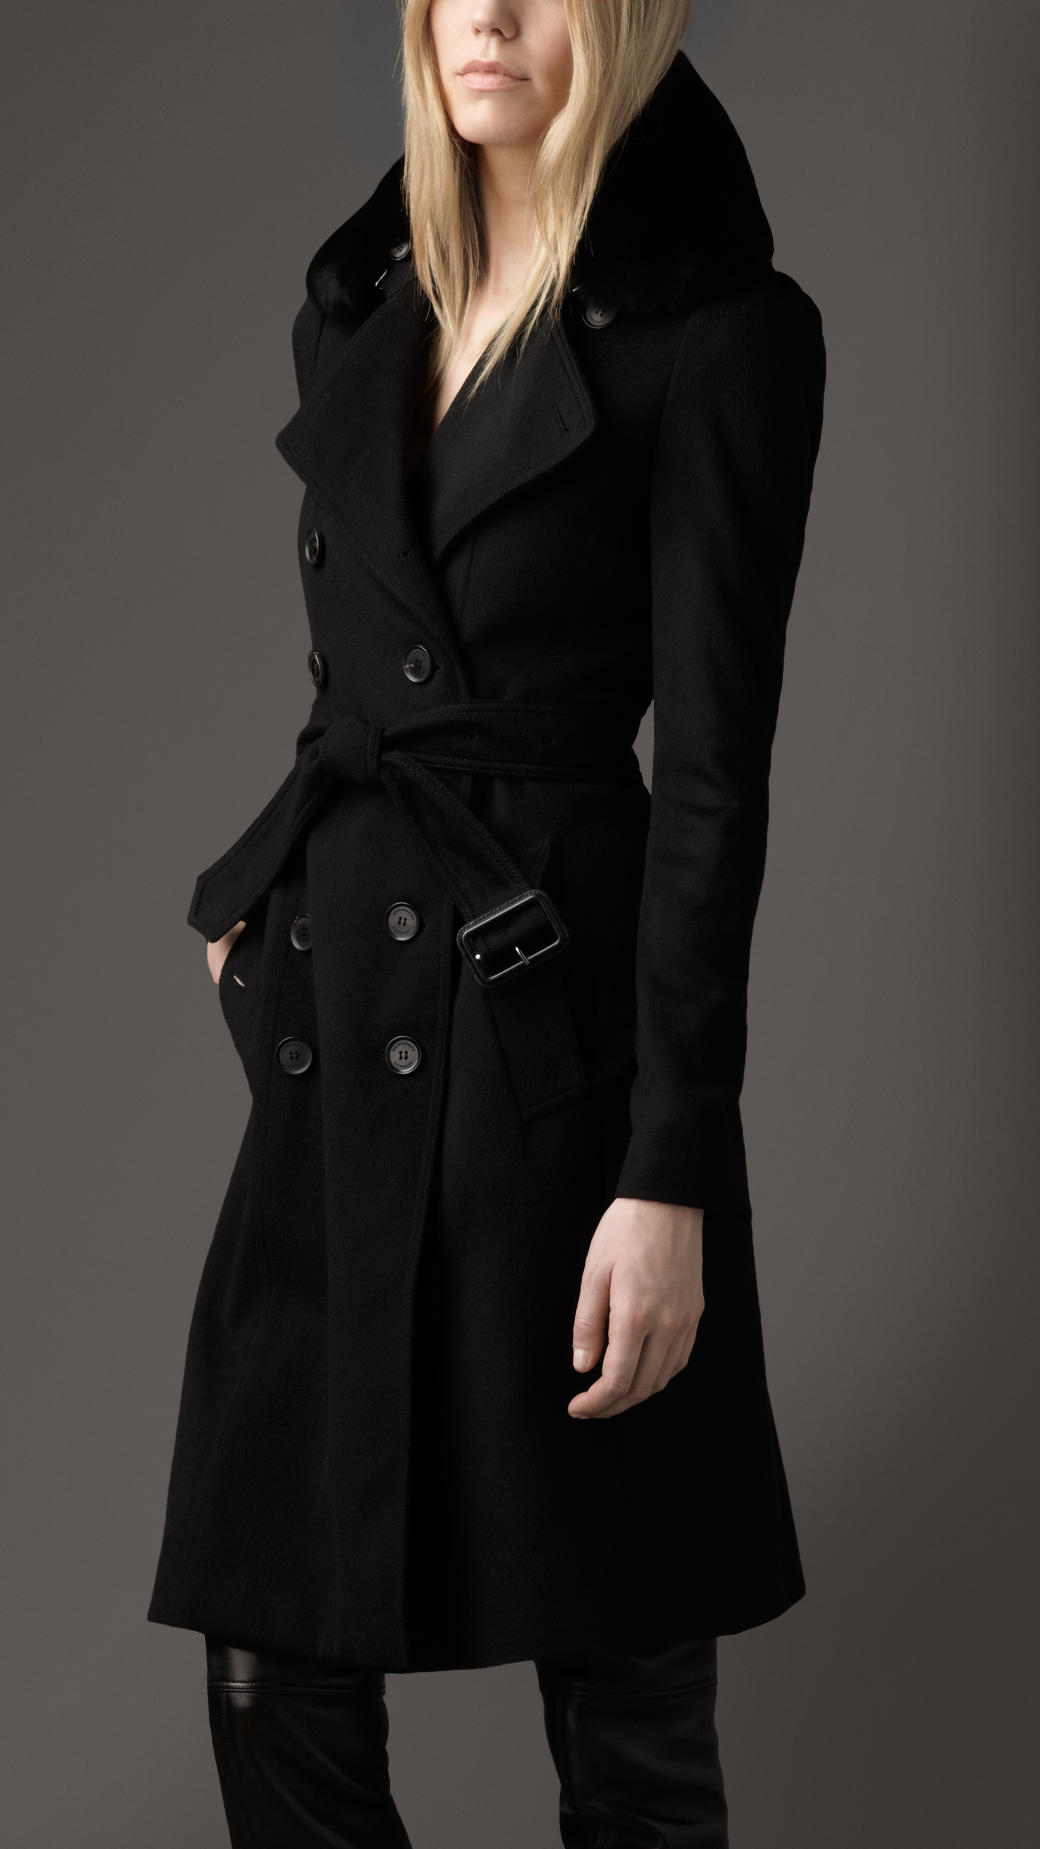 "A women's wool coat with a fox fur collar. This double-breasted black full-length coat has a dyed fox fur shawl collar, long sleeves and a tie belt. The interior is fully lined in black fabric with an ""Anglo Fabrics"" label attached."